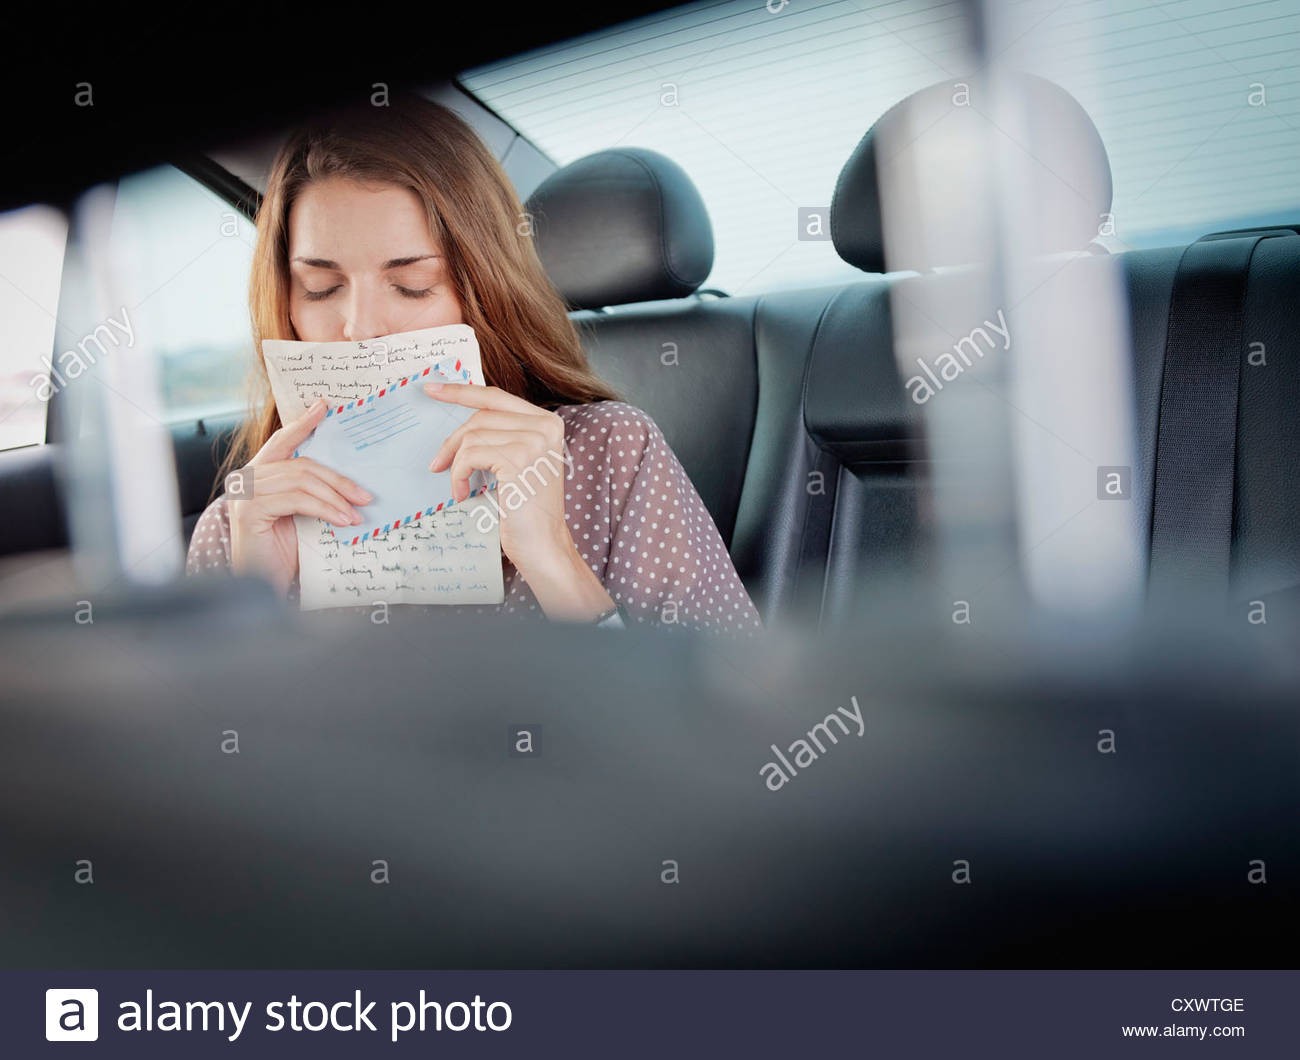 Woman kissing letter in backseat of car - Stock Image